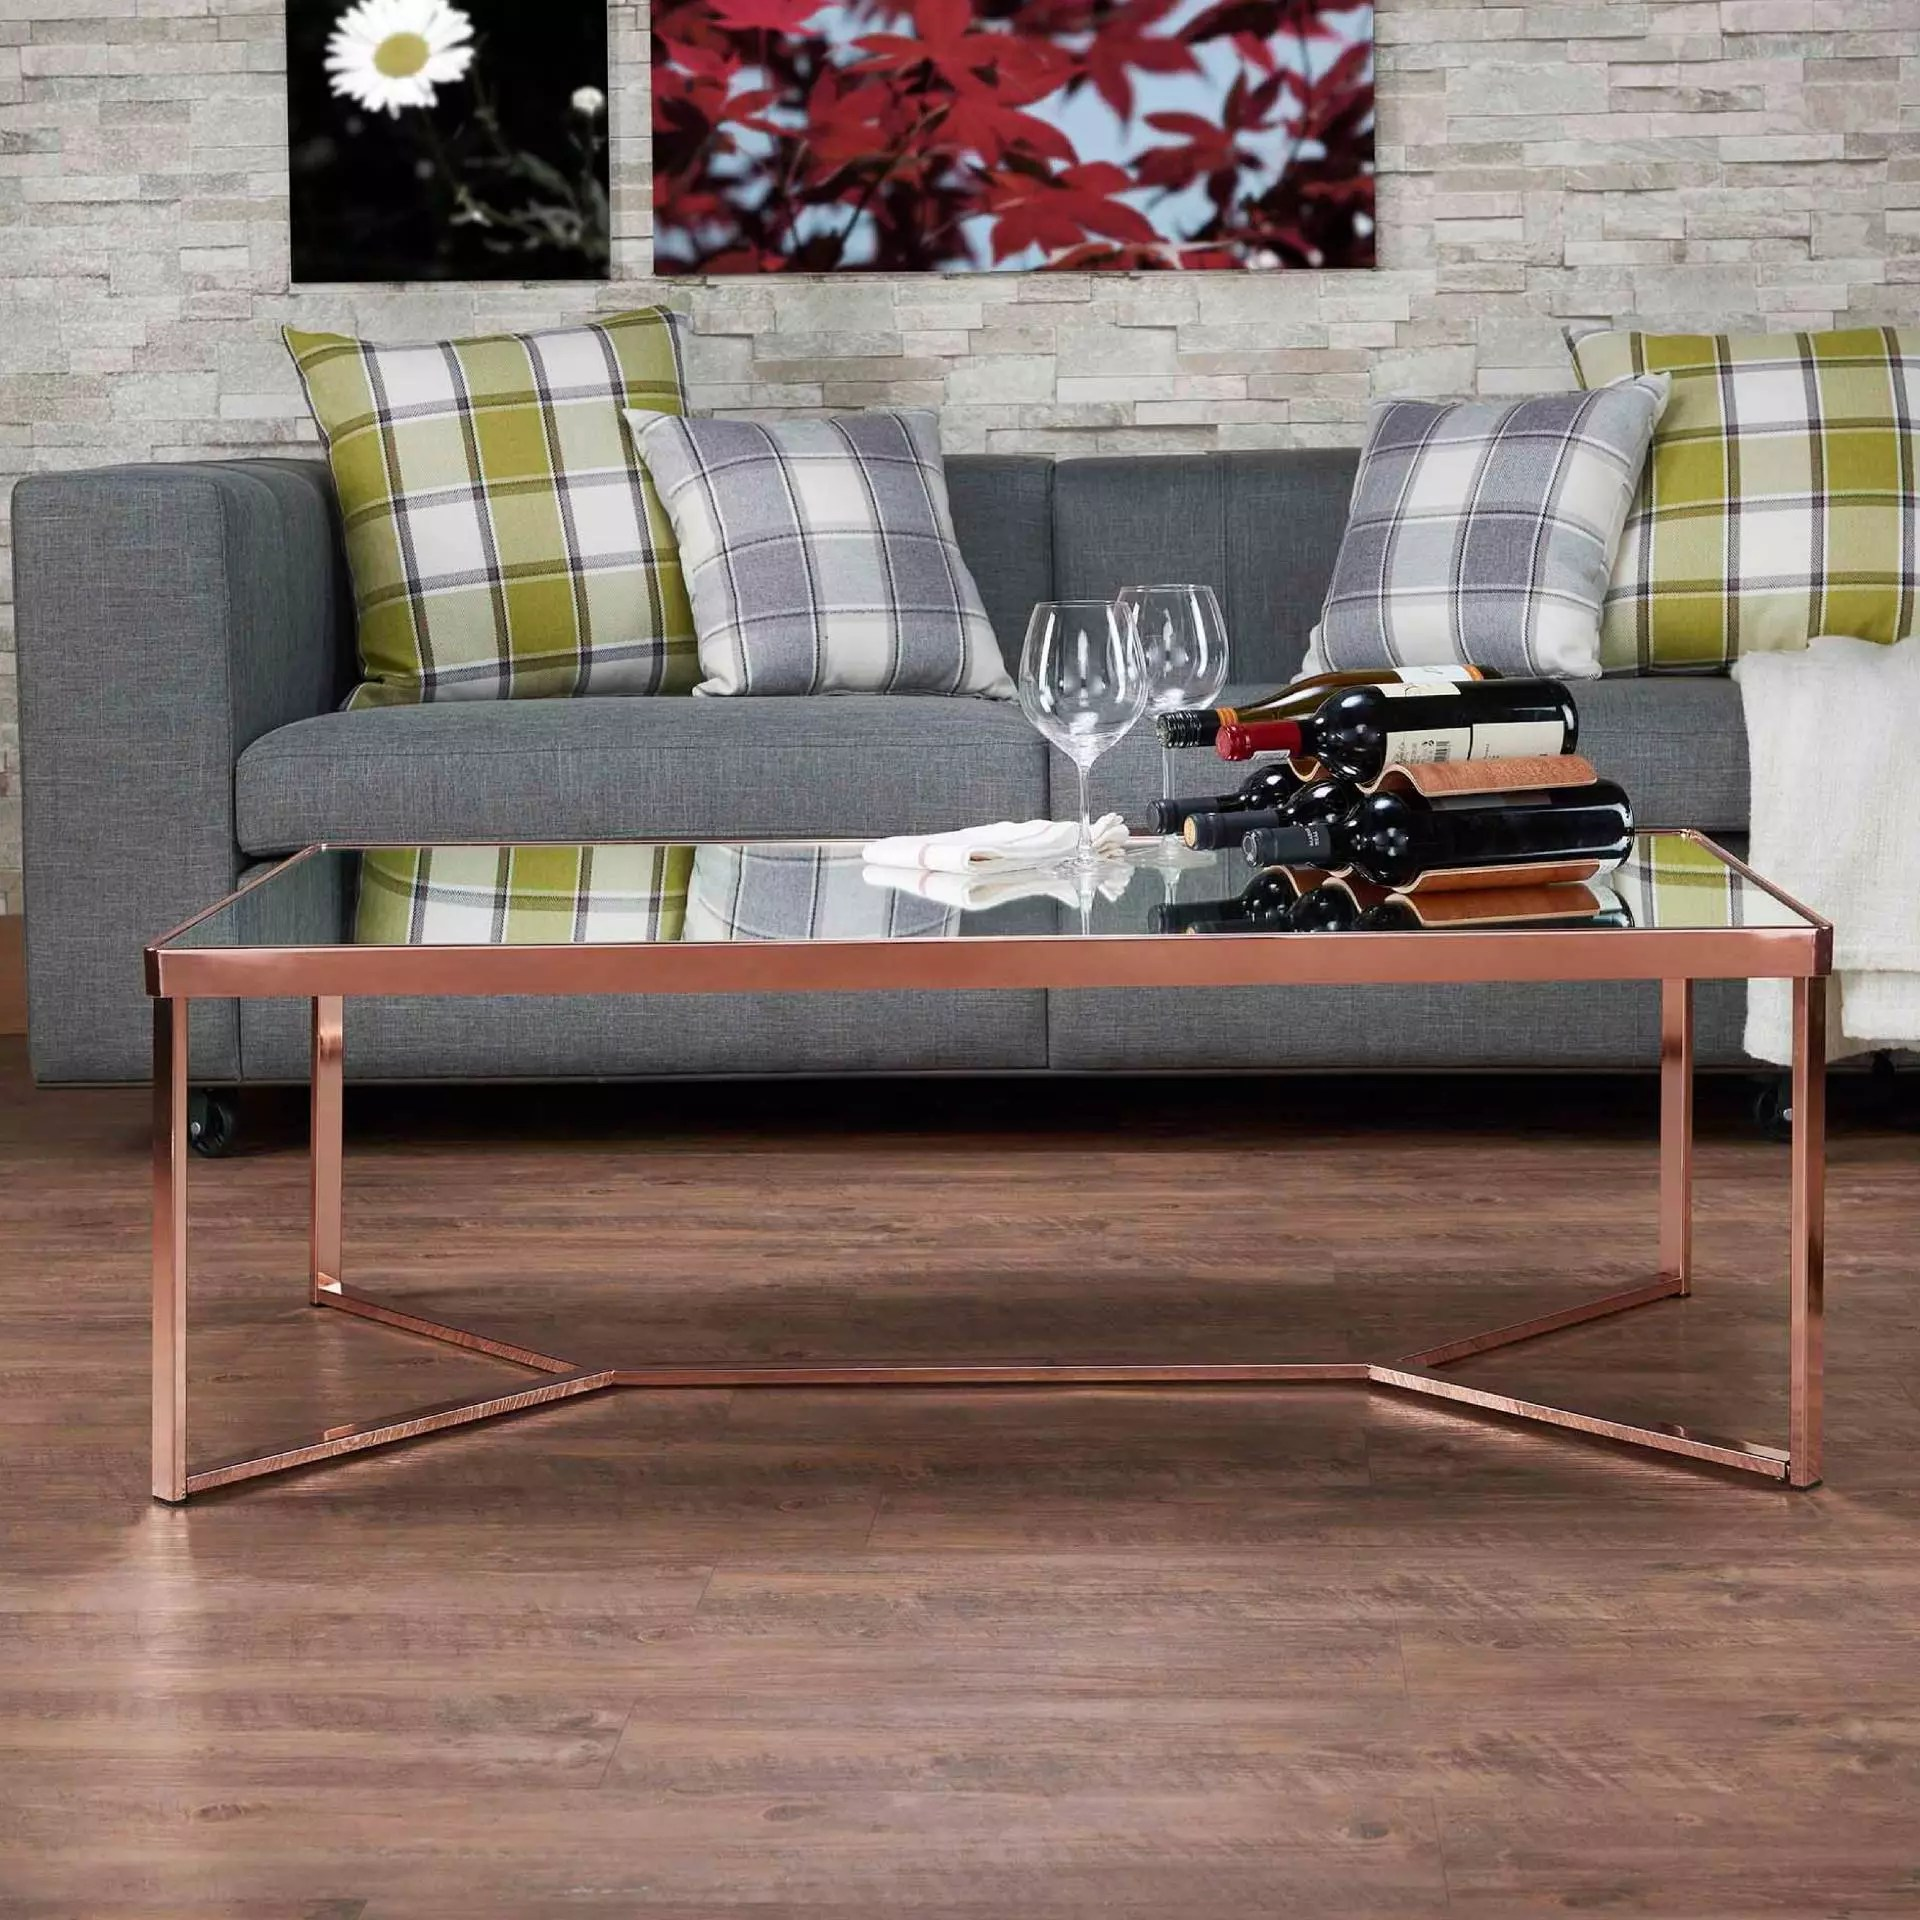 mirror surface glass coffee table